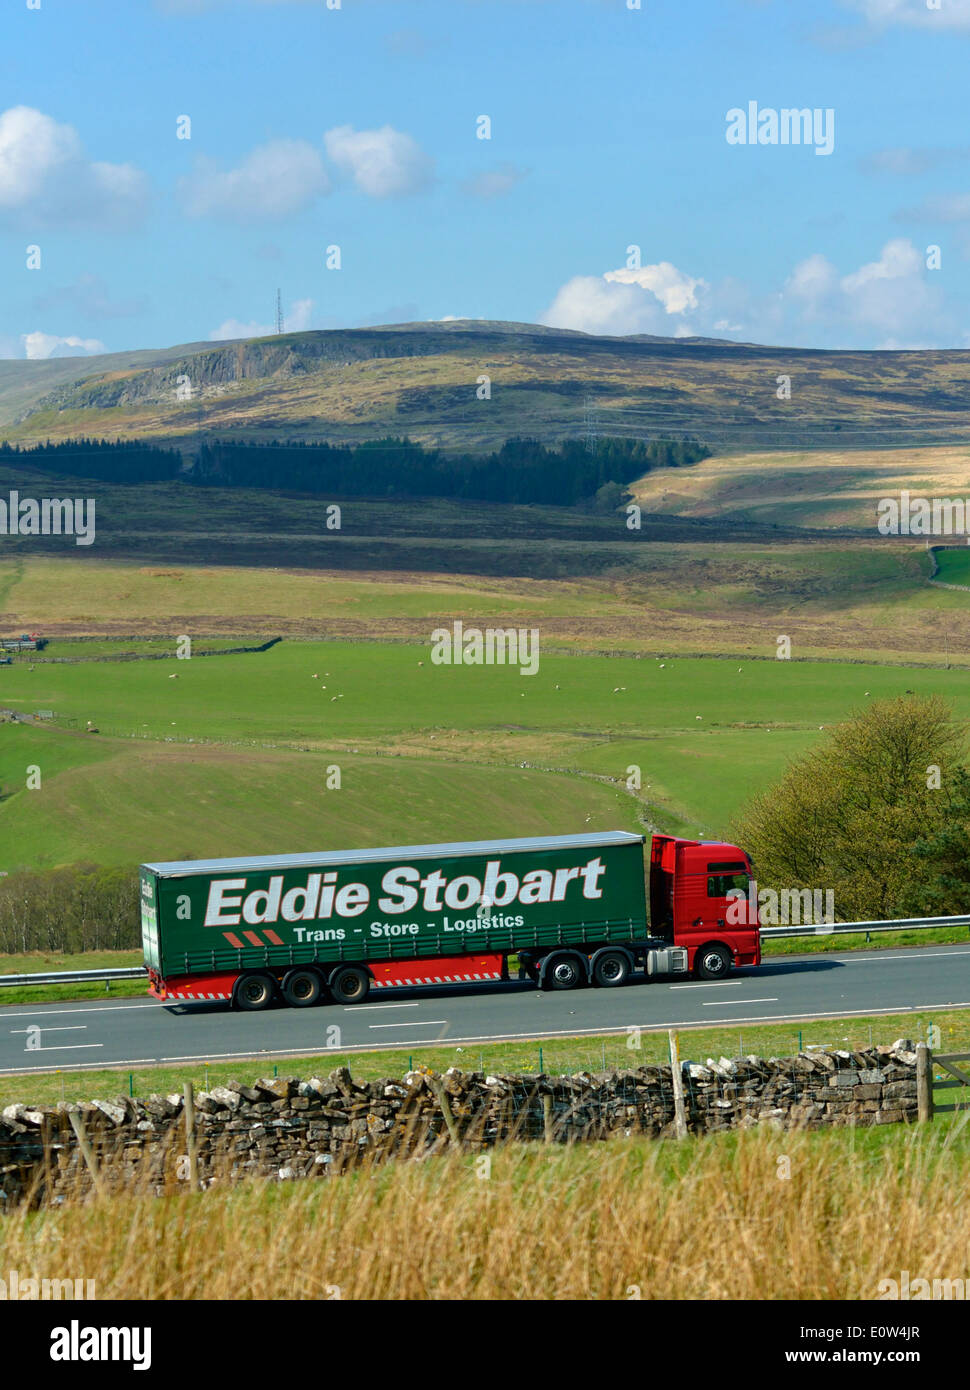 Eddie Stobart HGV on M6 motorway. Shap, Cumbria, England, United Kingdom, Europe. Stock Photo